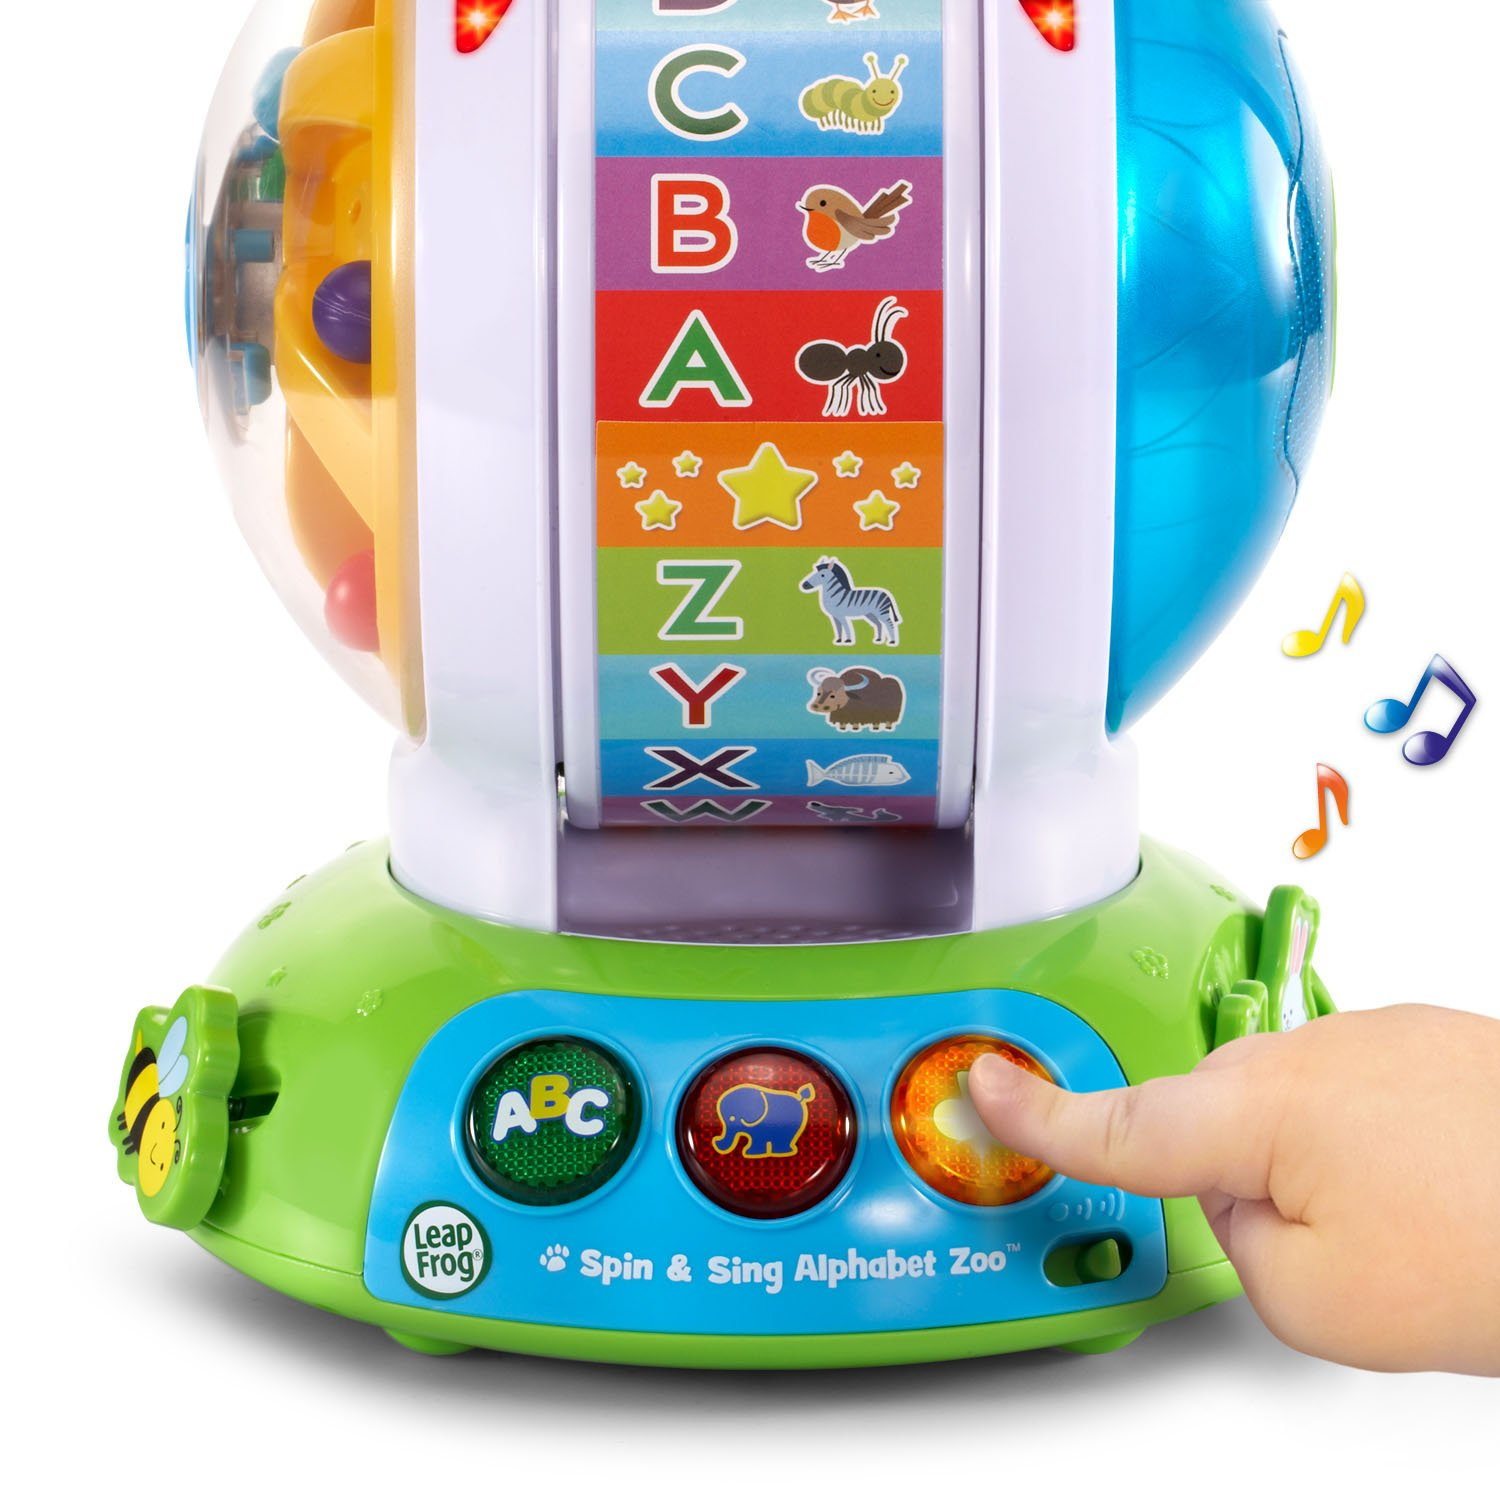 Amazoncom Leapfrog Spin And Sing Alphabet Zoo Toys Games